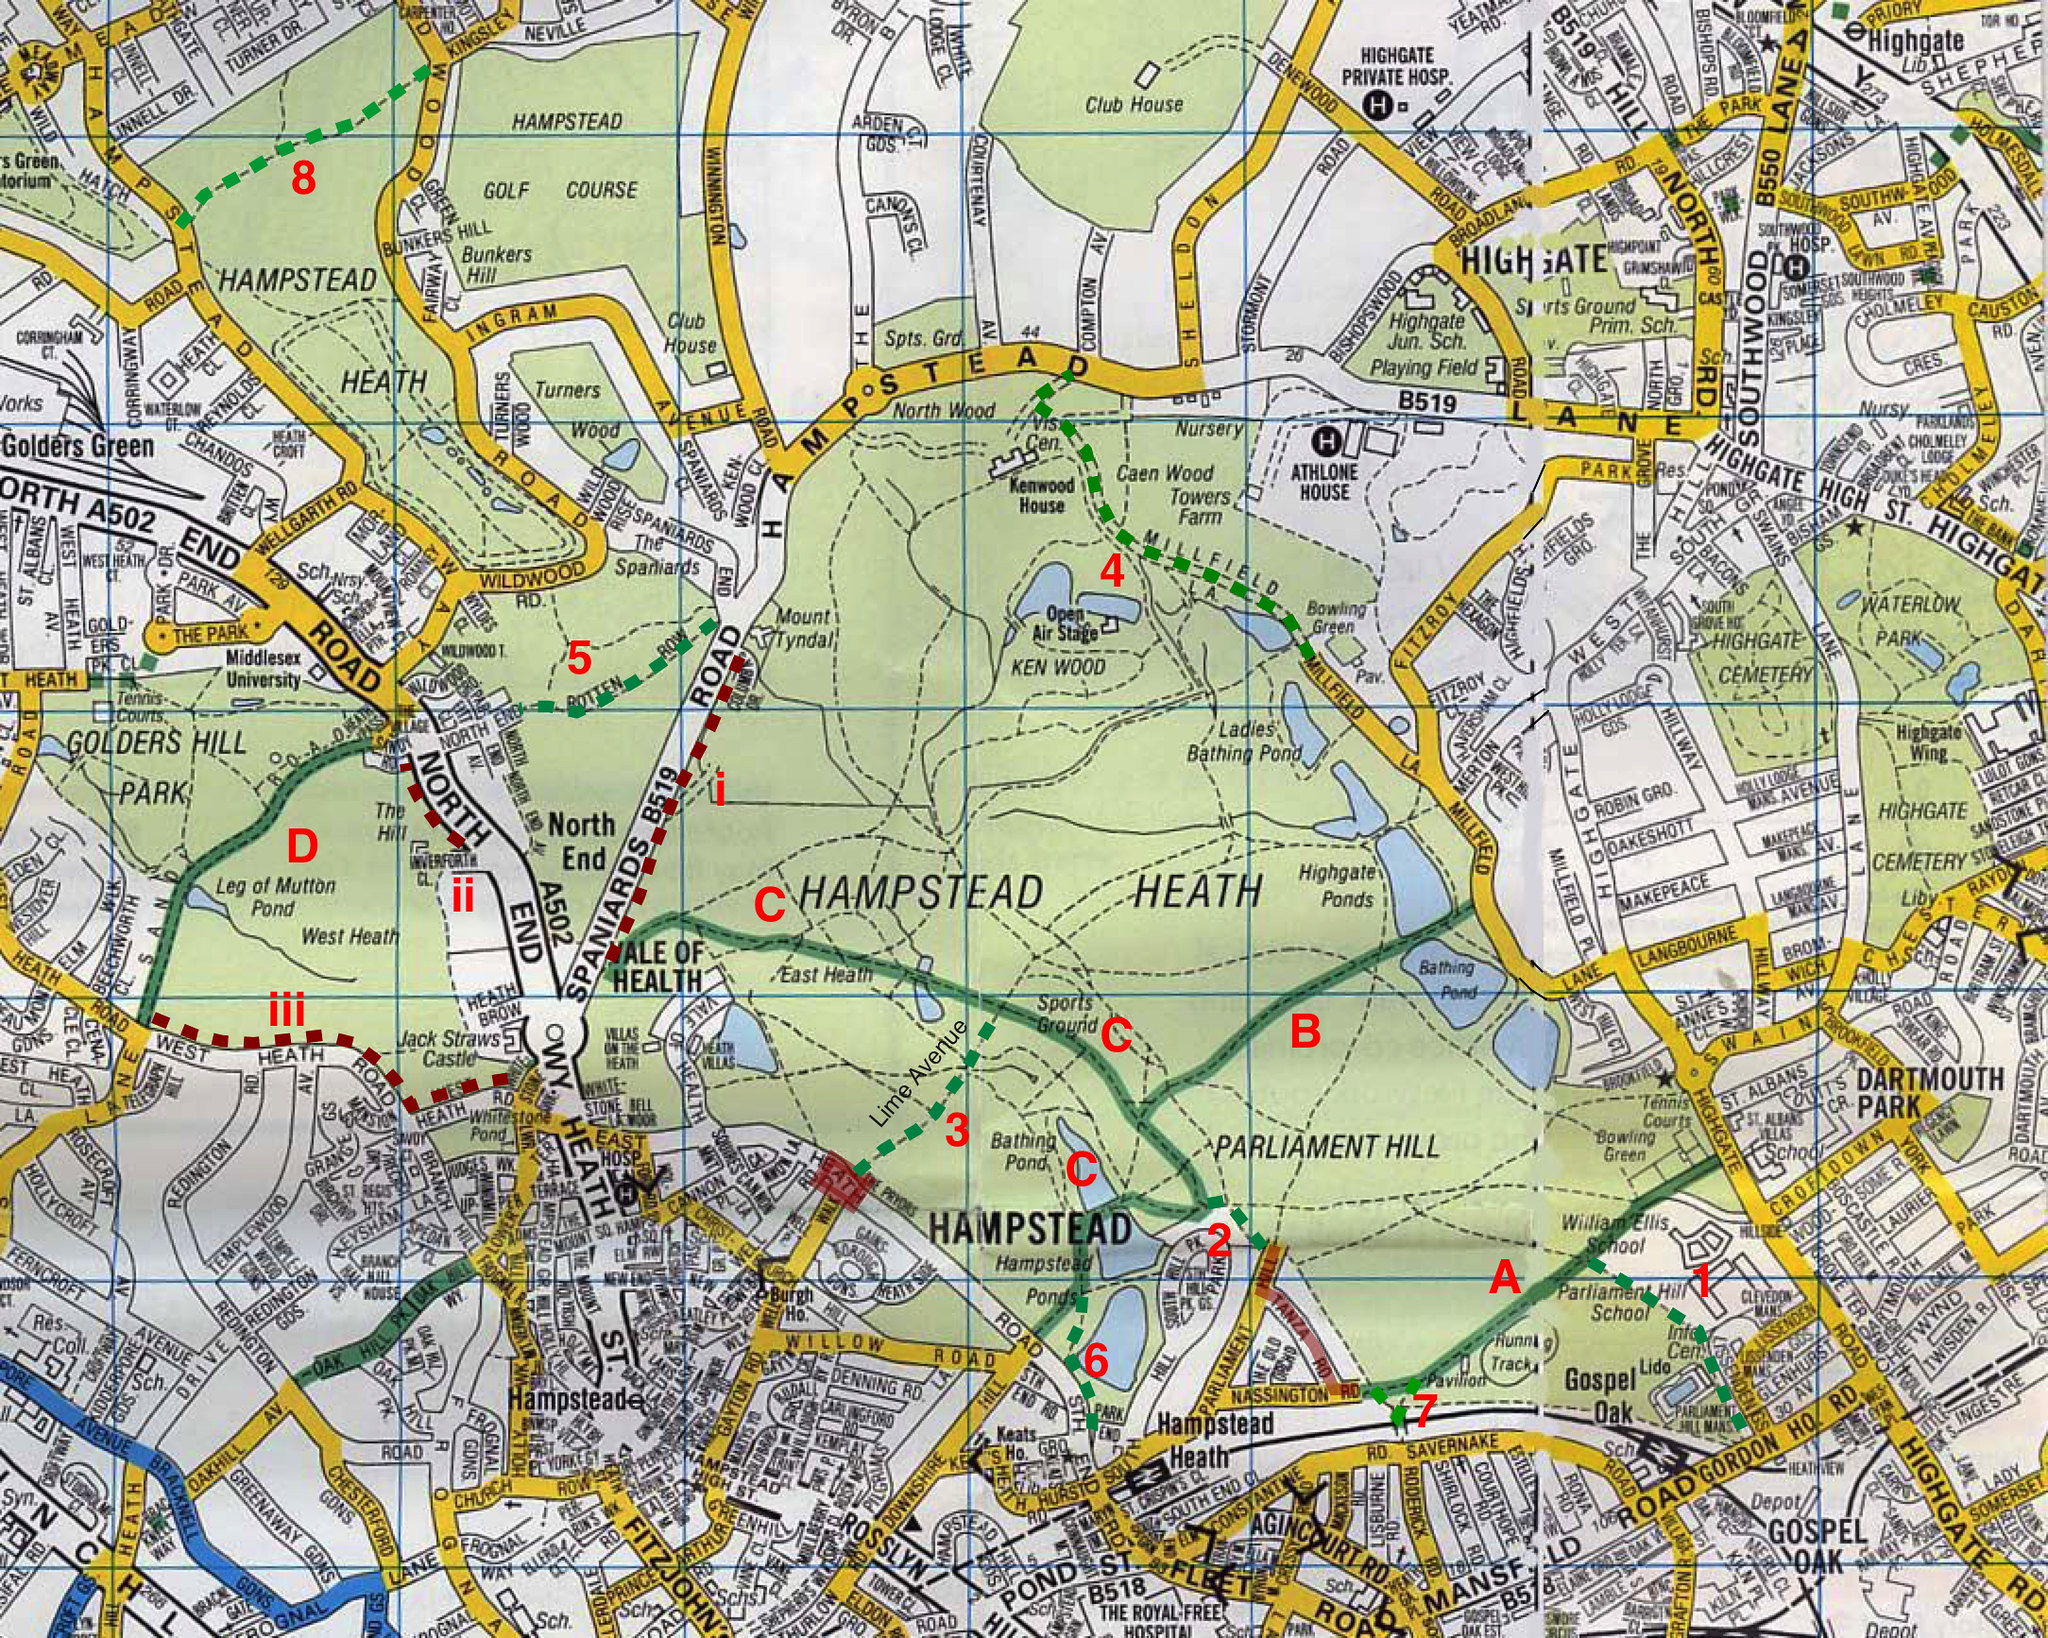 Hampstead Heath Map Hampstead Heath Hampstead Heath Map